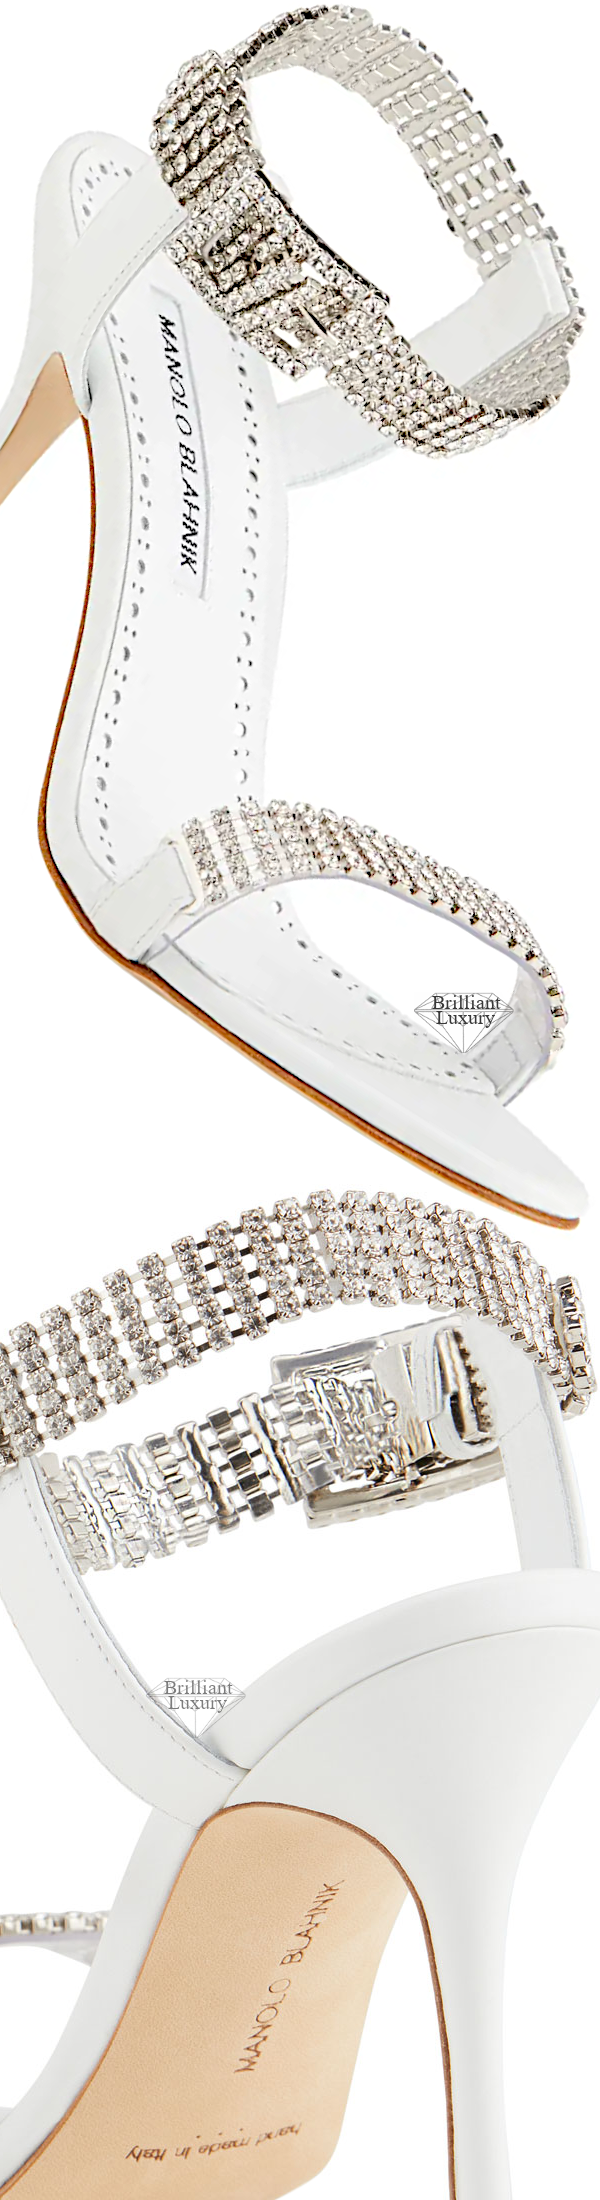 Shoe Collection Spring 2020 Manolo Blahnik Bashifa White Leather & Crystal Sandals